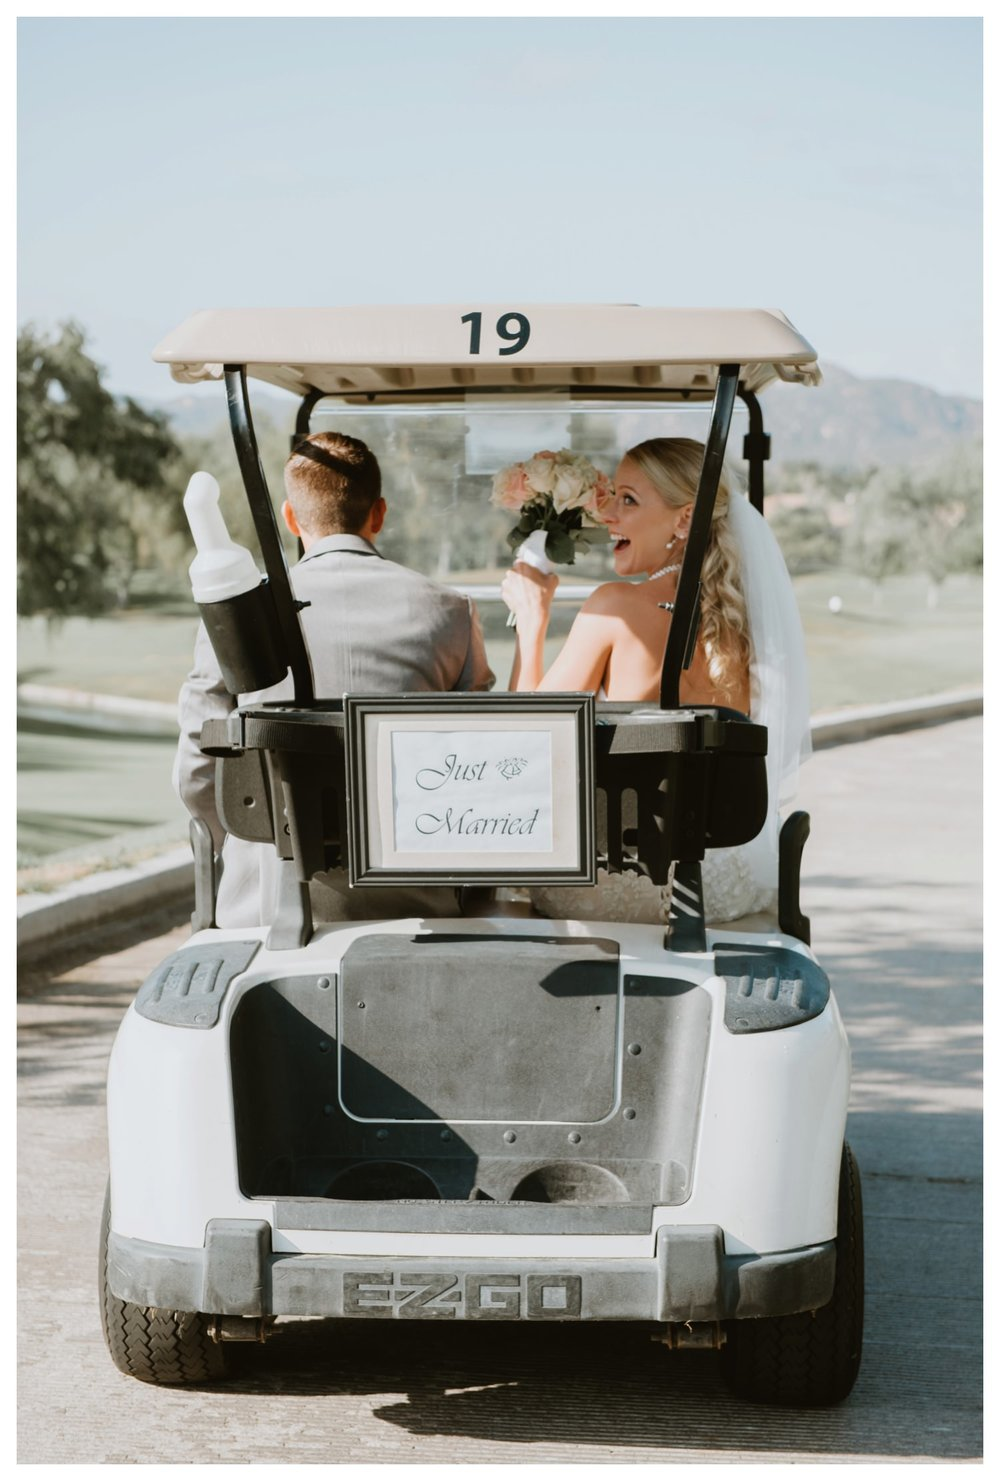 The just married couple make their fun get away in a golf cart.